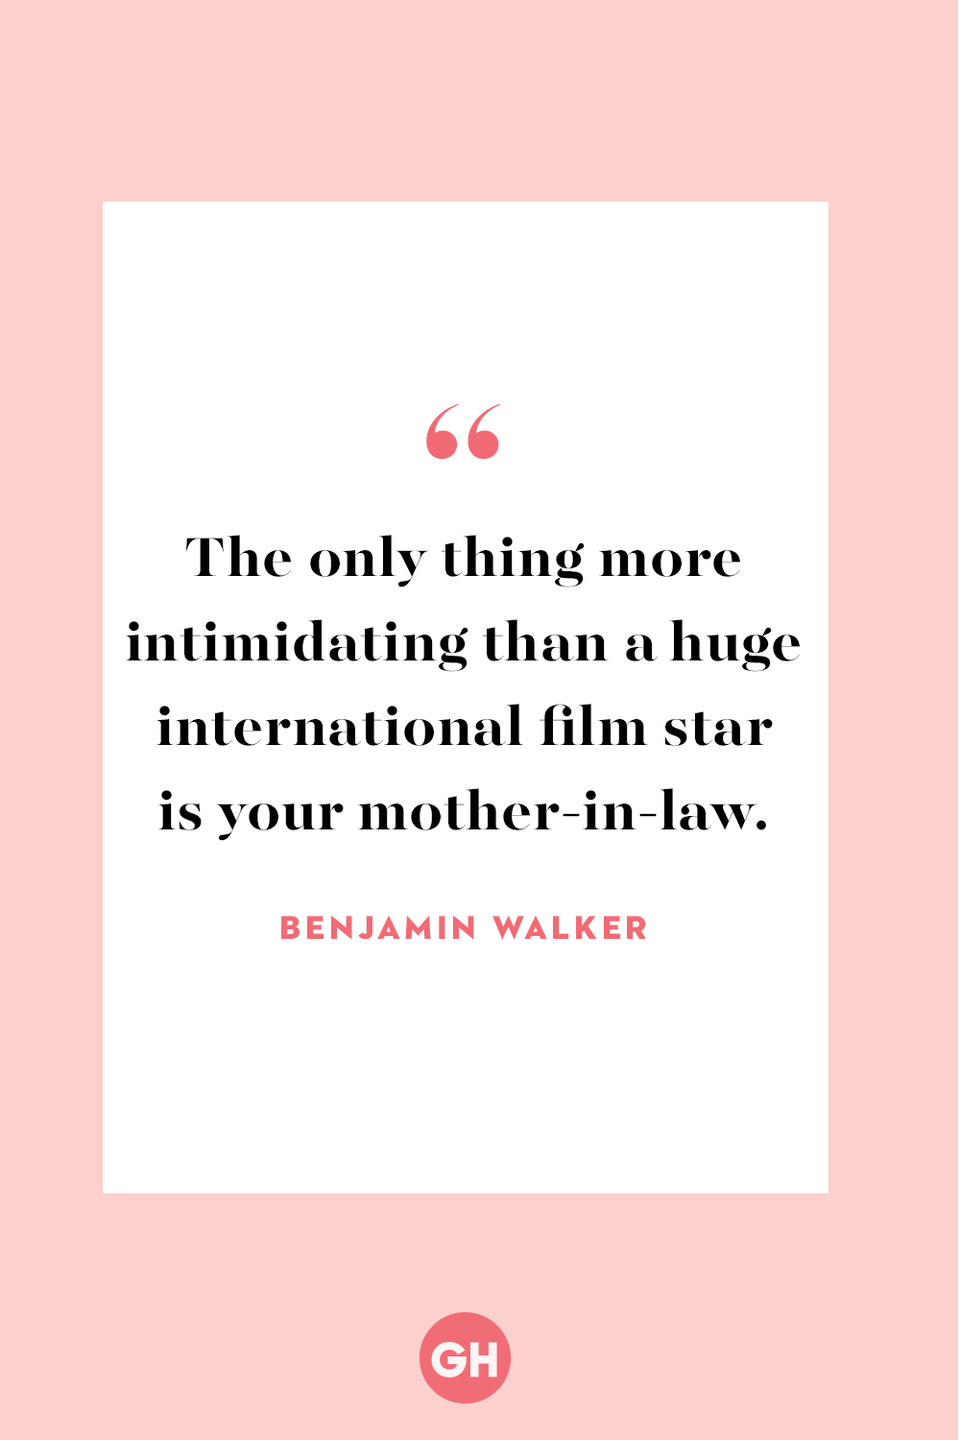 <p>The only thing more intimidating than a huge international film star is your mother-in-law.</p>